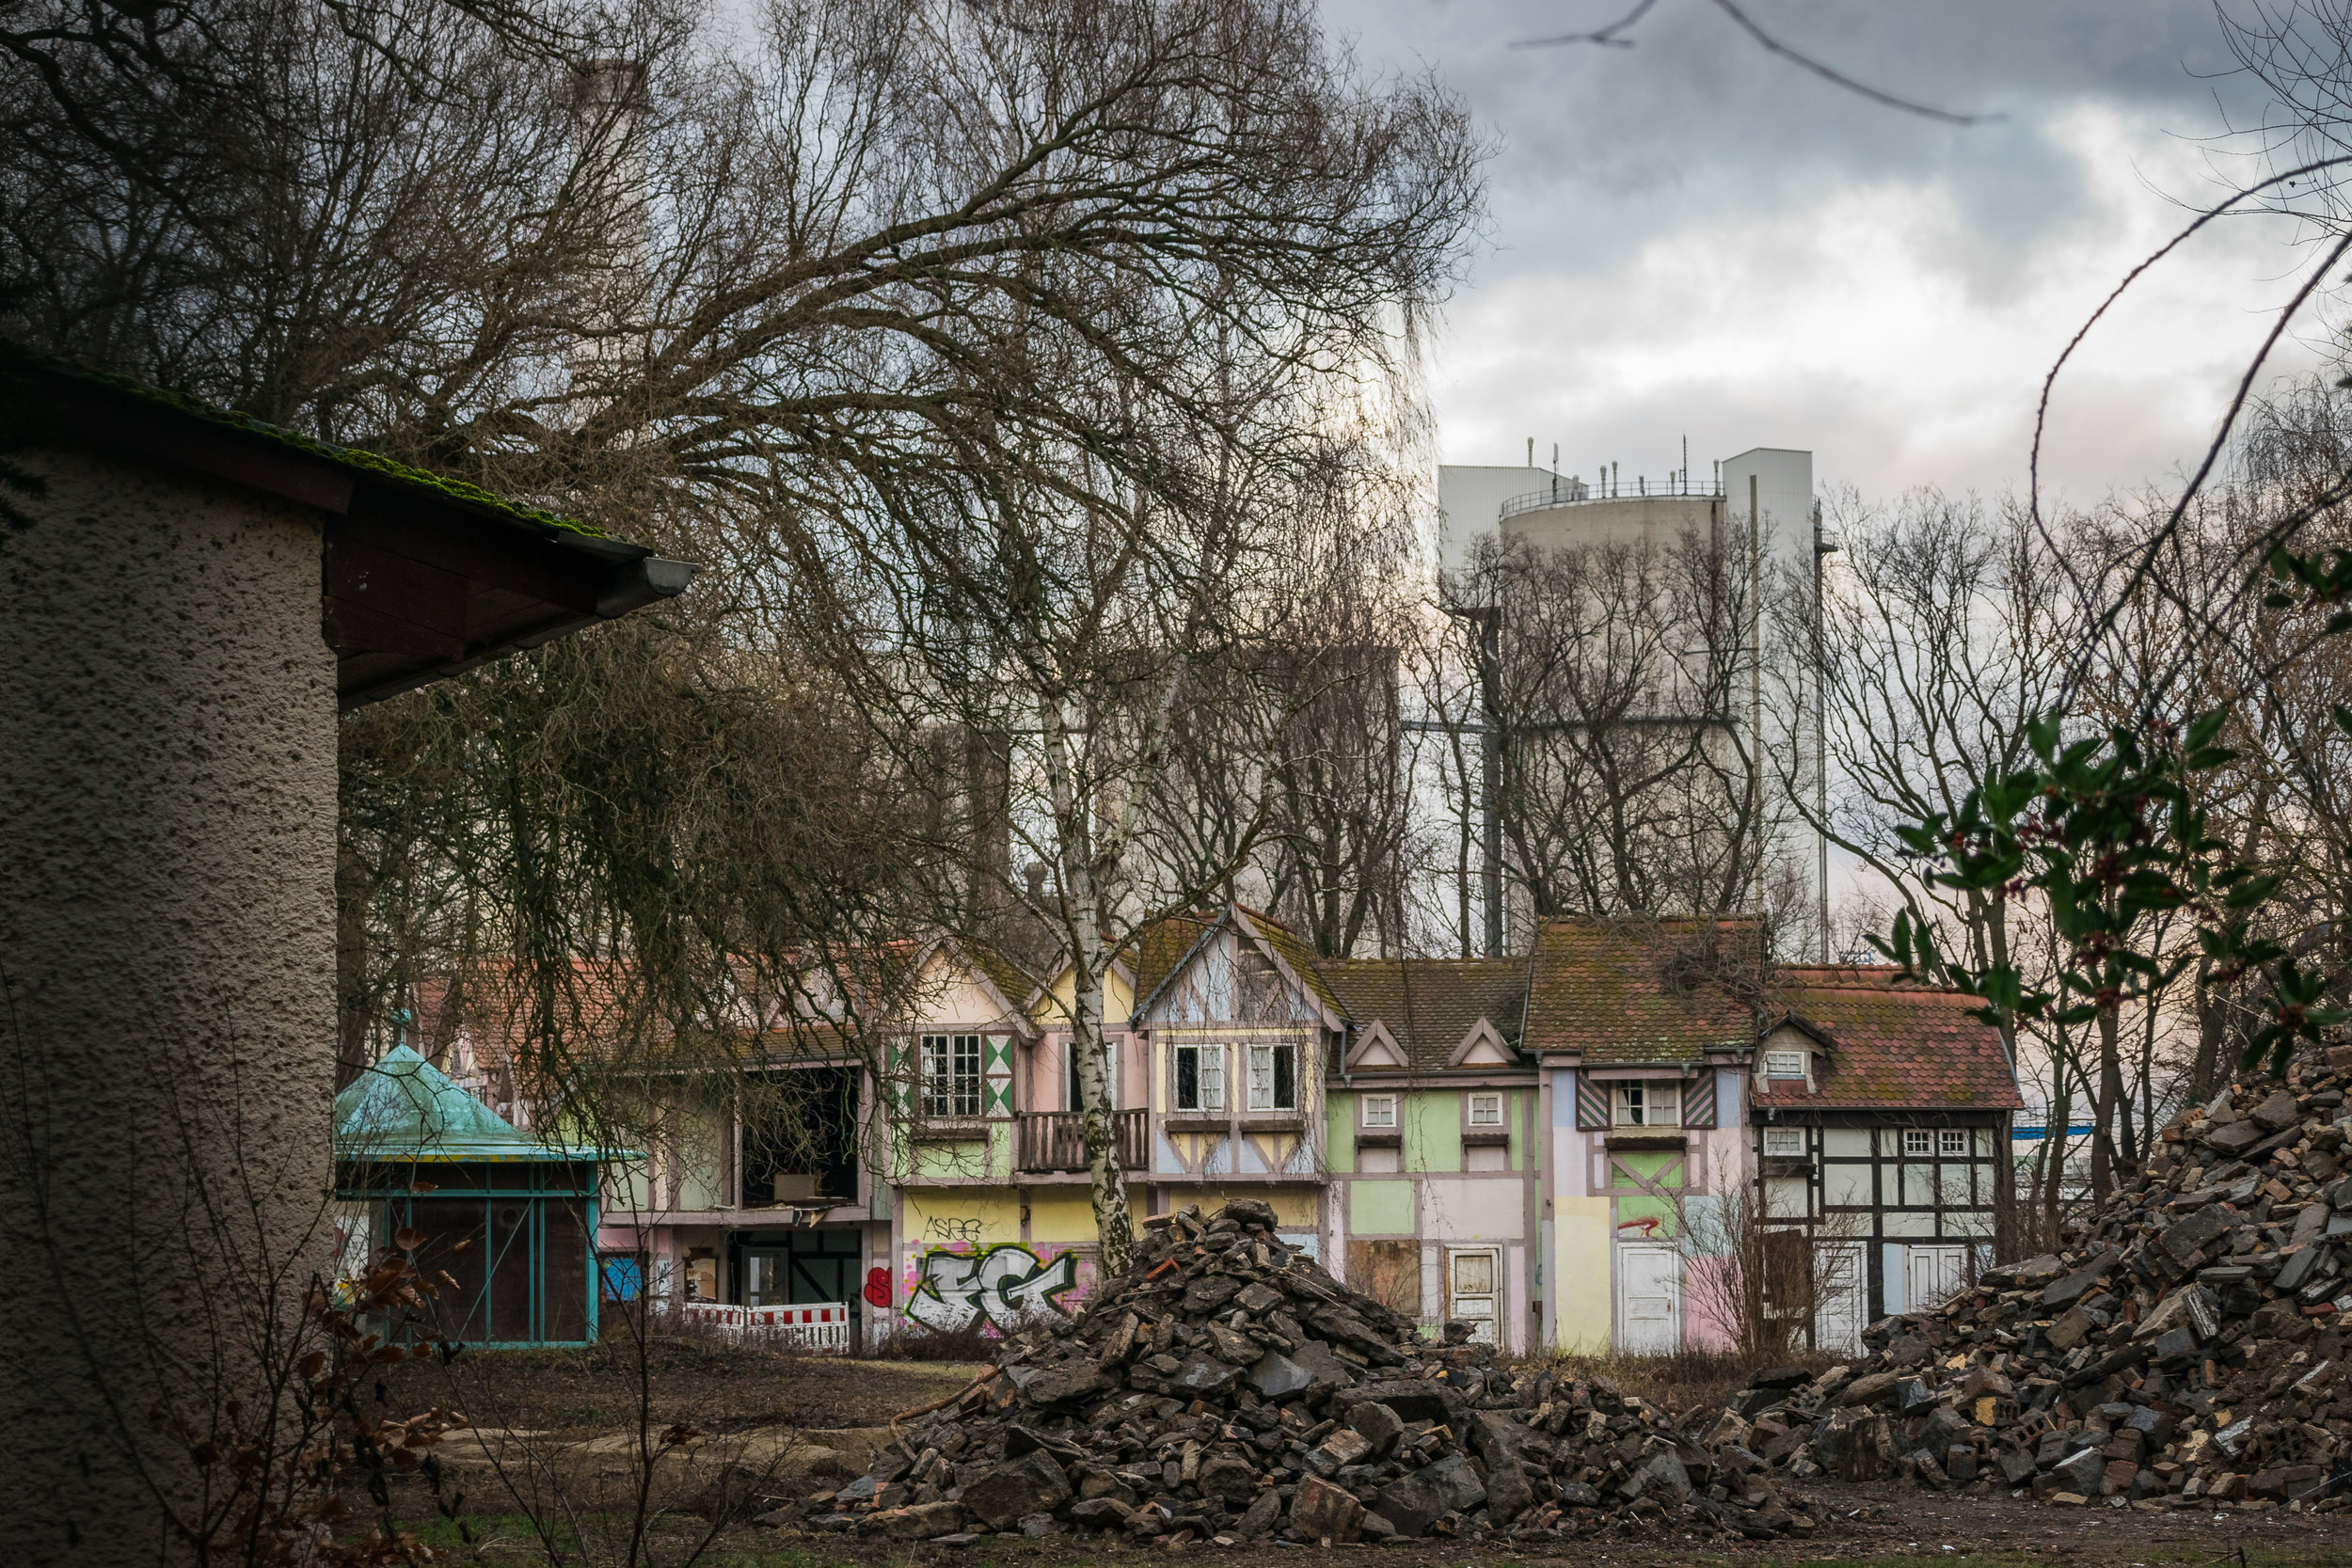 the poor faux village that suffered arson